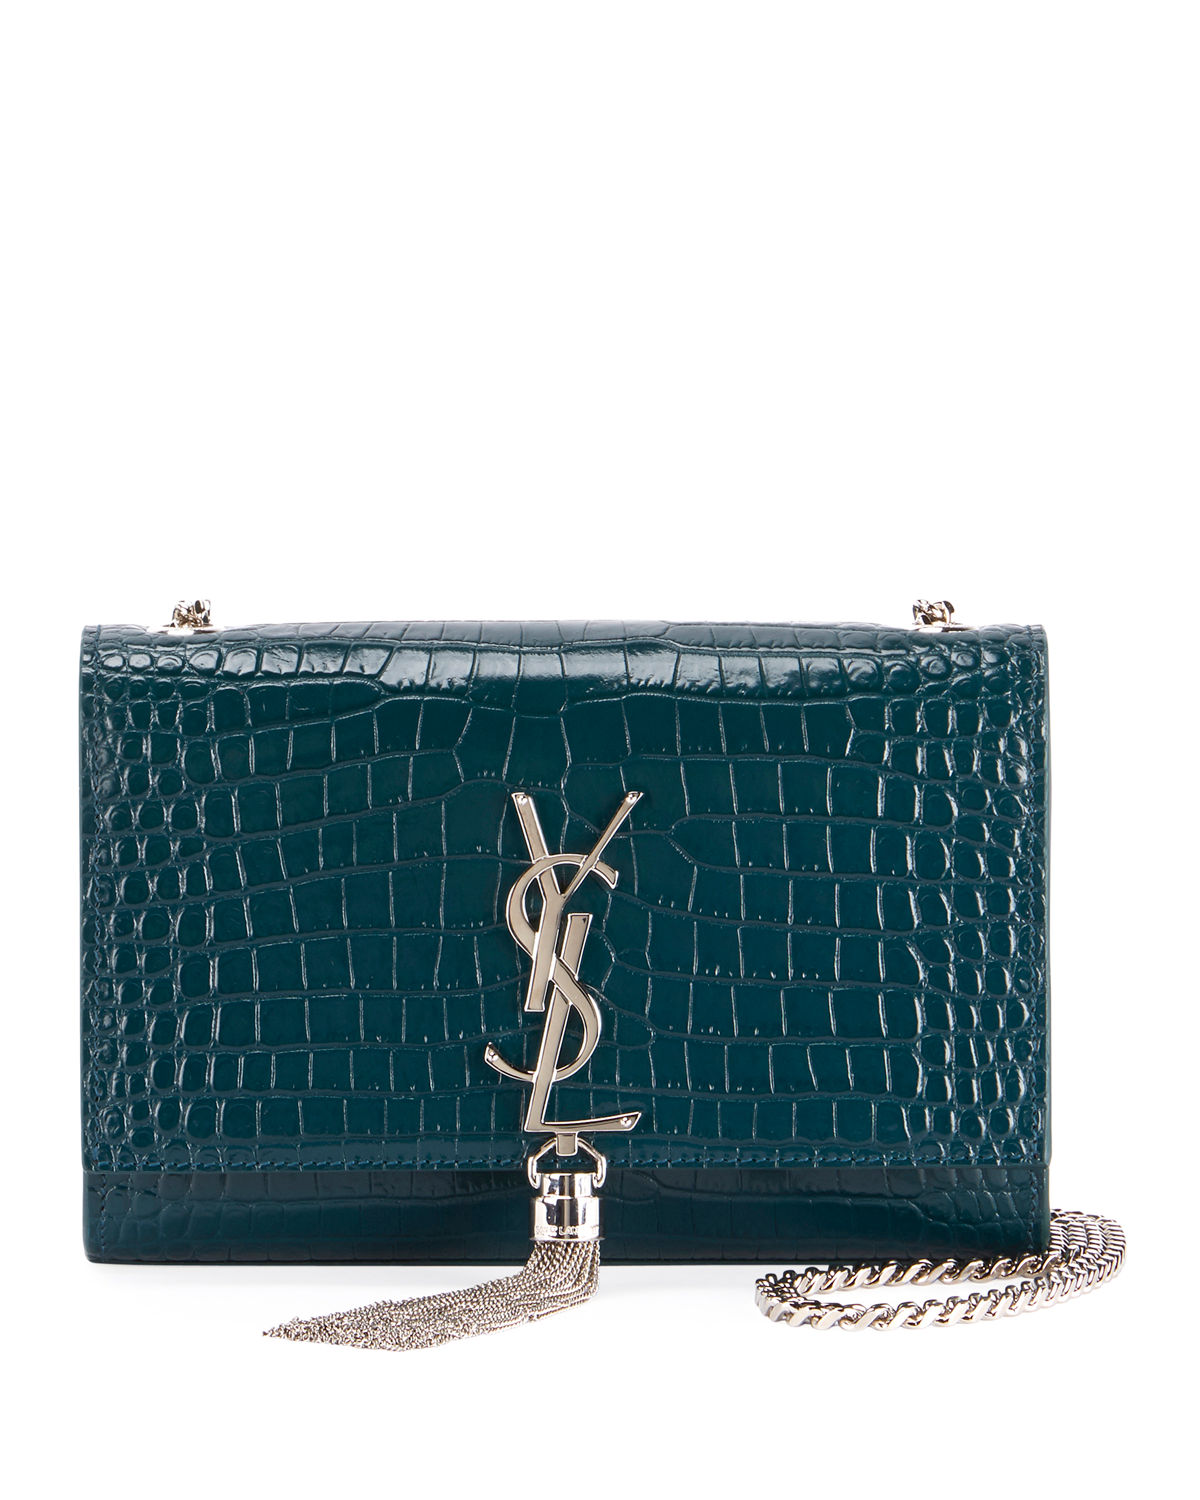 Saint Laurent Kate Monogram YSL Small Tassel Croco Shoulder Bag ... 5ebf92c12b218